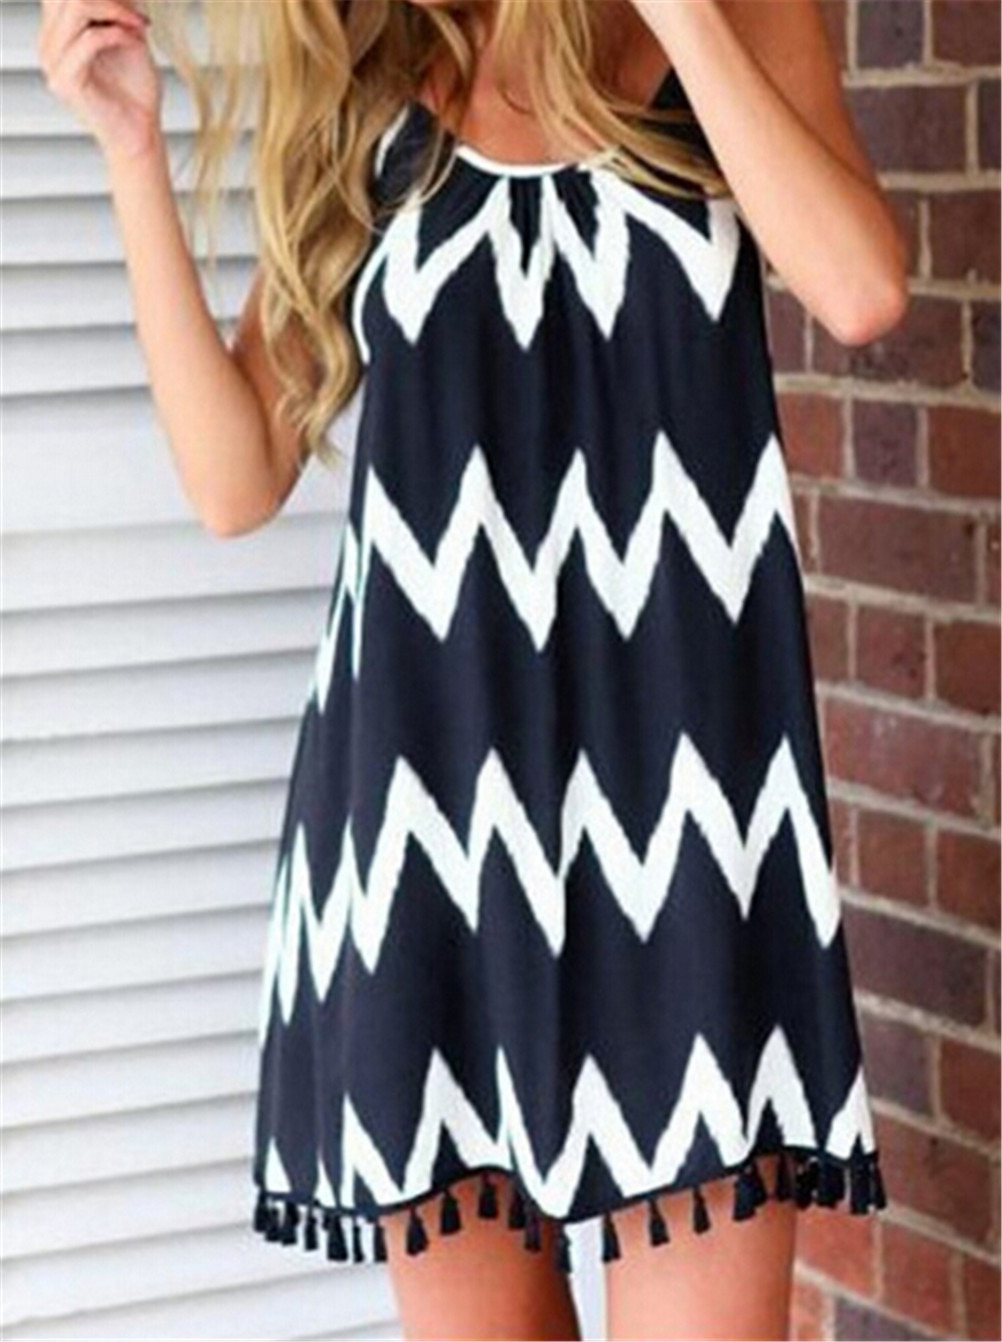 Summer <font><b>Backless</b></font> <font><b>Sexy</b></font> <font><b>Dress</b></font> Women Fashion Waves Stirpe Tassels <font><b>Mini</b></font> Beach <font><b>Dress</b></font> <font><b>Dress</b></font> Slip <font><b>Dress</b></font> image